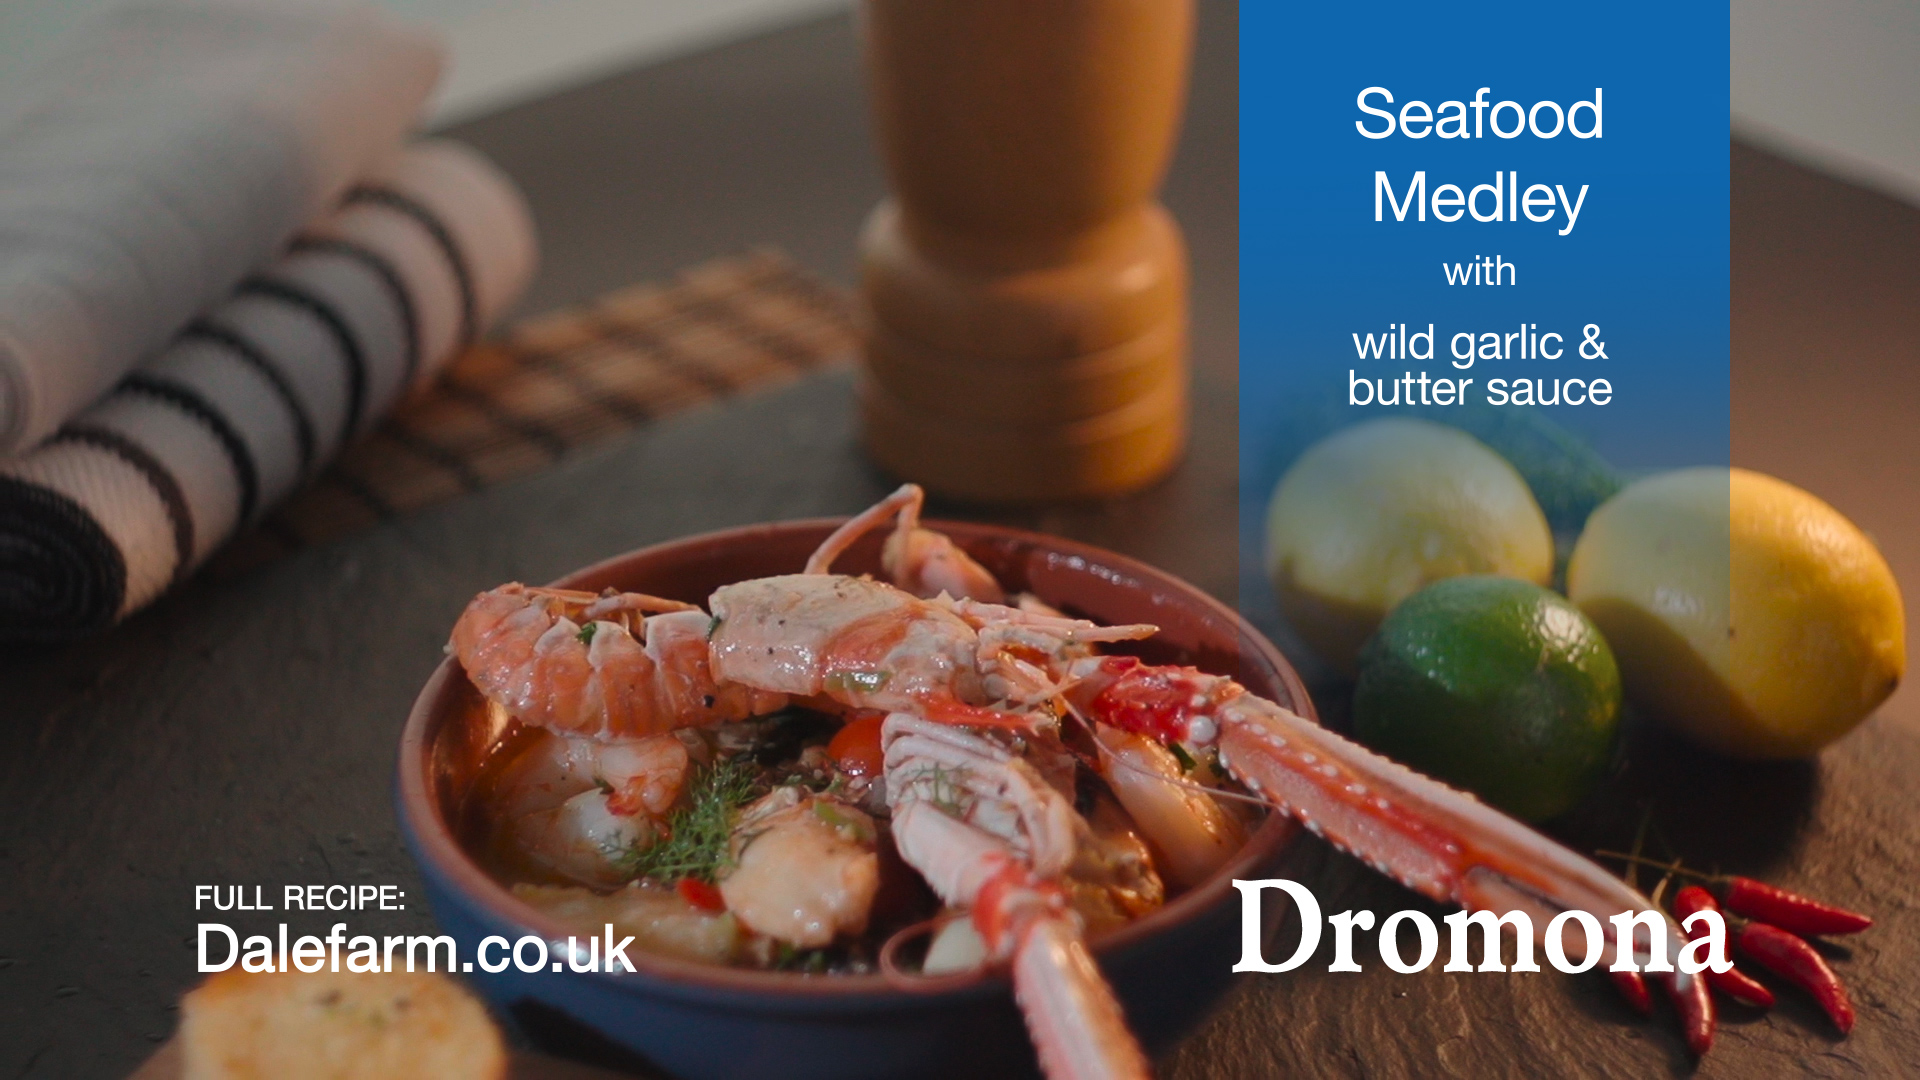 04. Seafood Medley with wild garlic  butter sauce